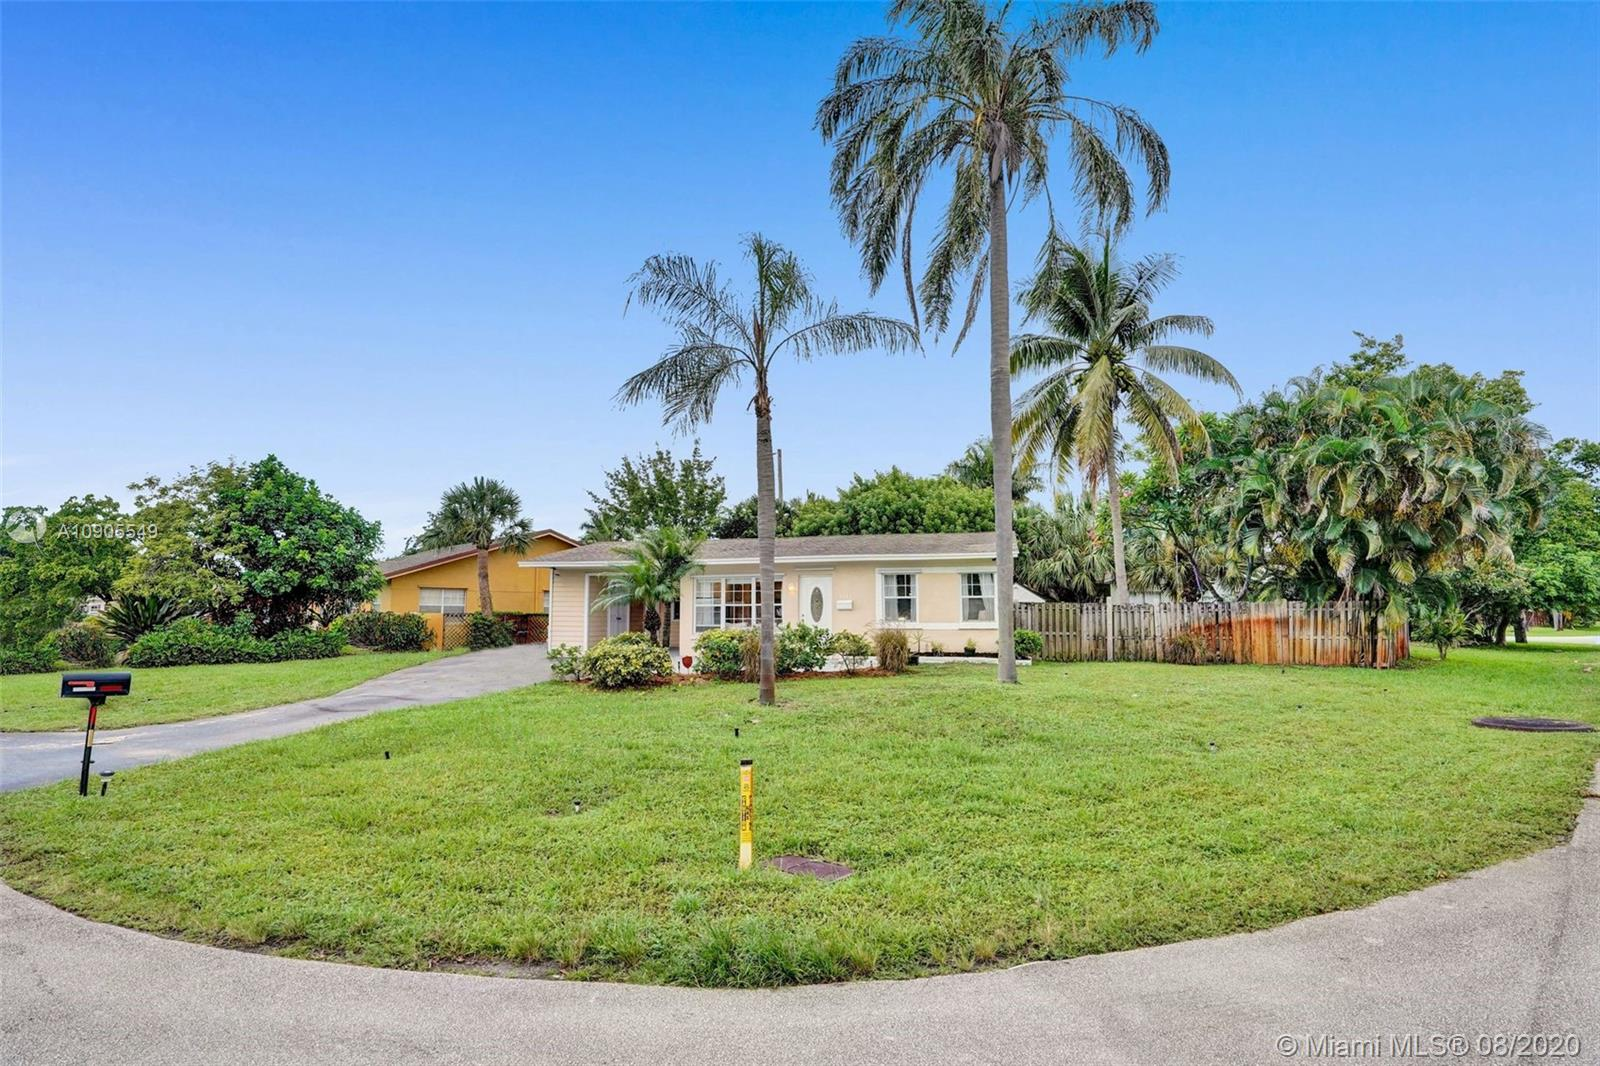 Details for 1671 32nd Ct, Pompano Beach, FL 33064